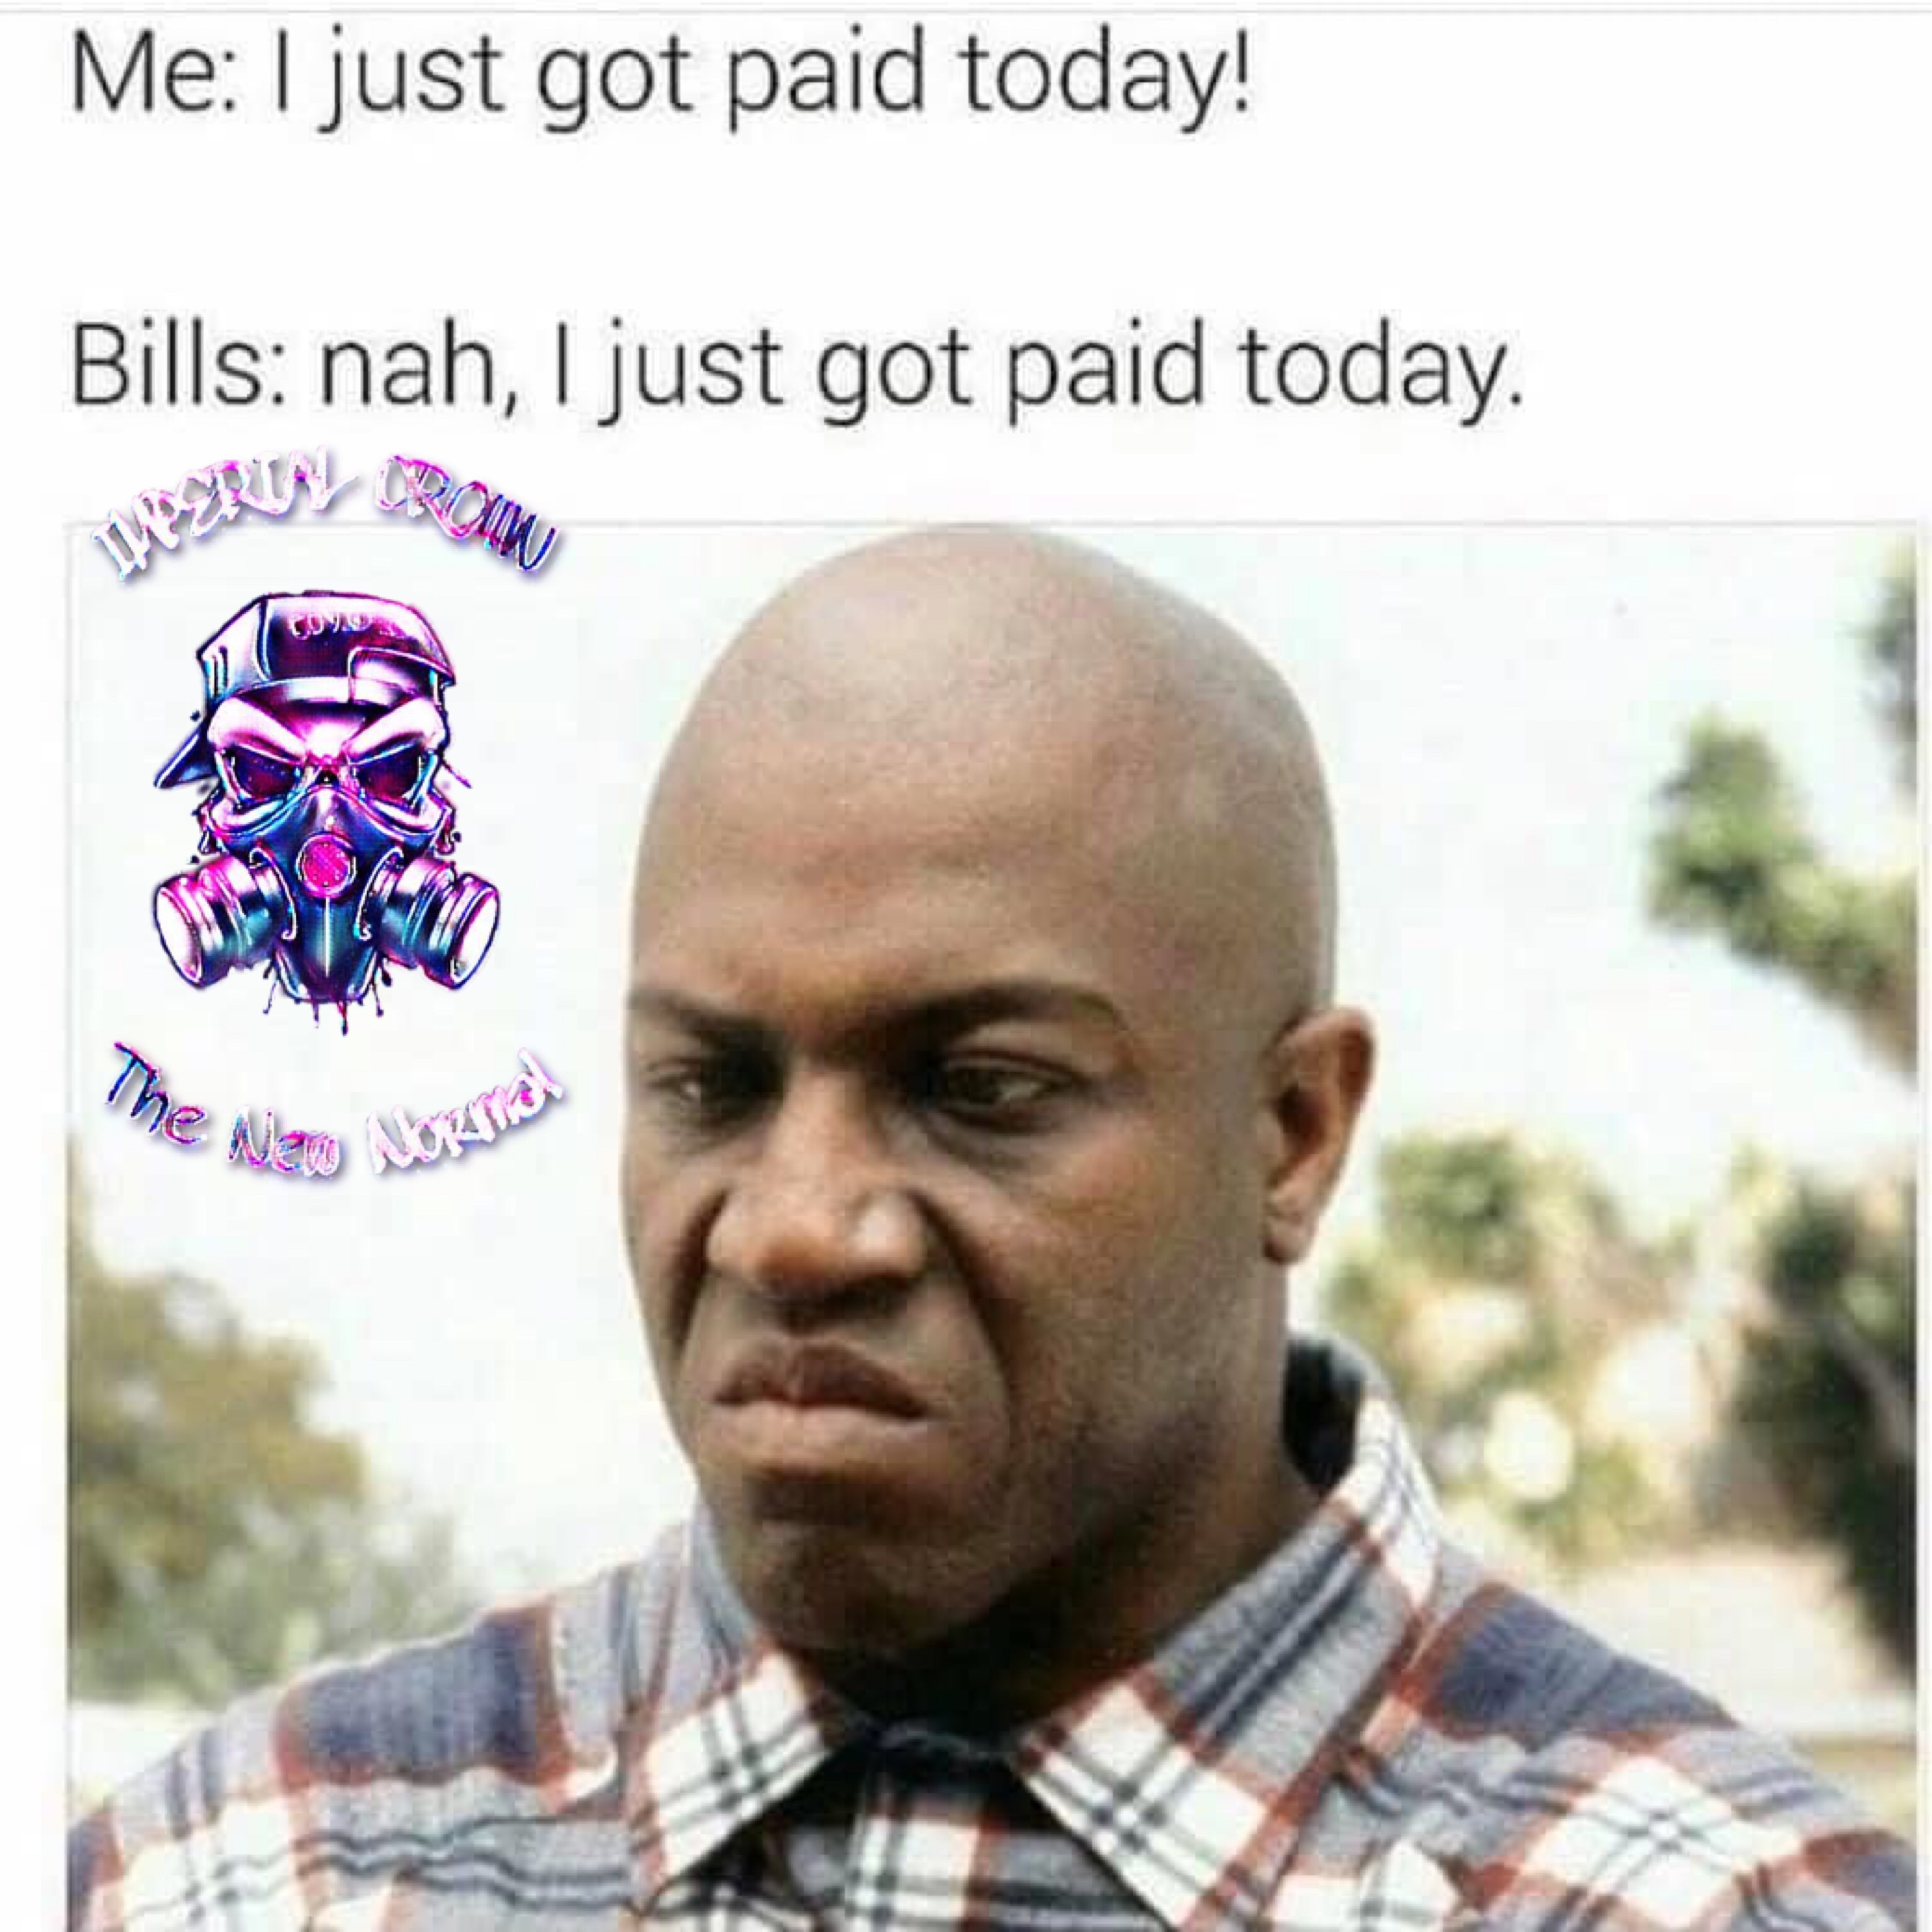 I just got paid today, bills nah I just got paid today